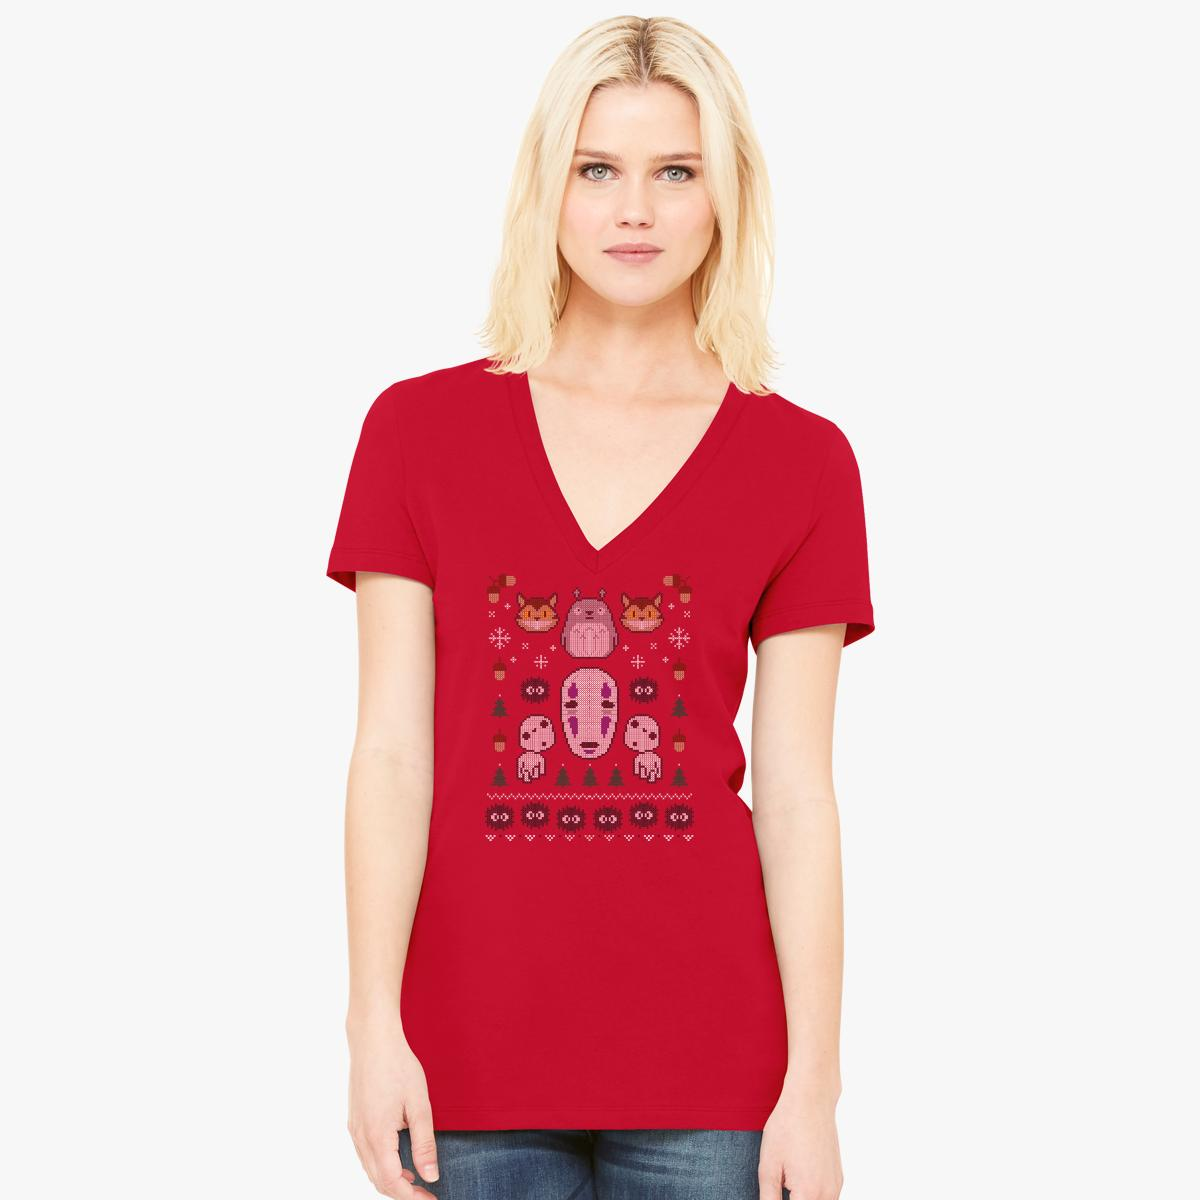 Spirited Away ugly sweater Women's V-Neck T-shirt | Customon.com